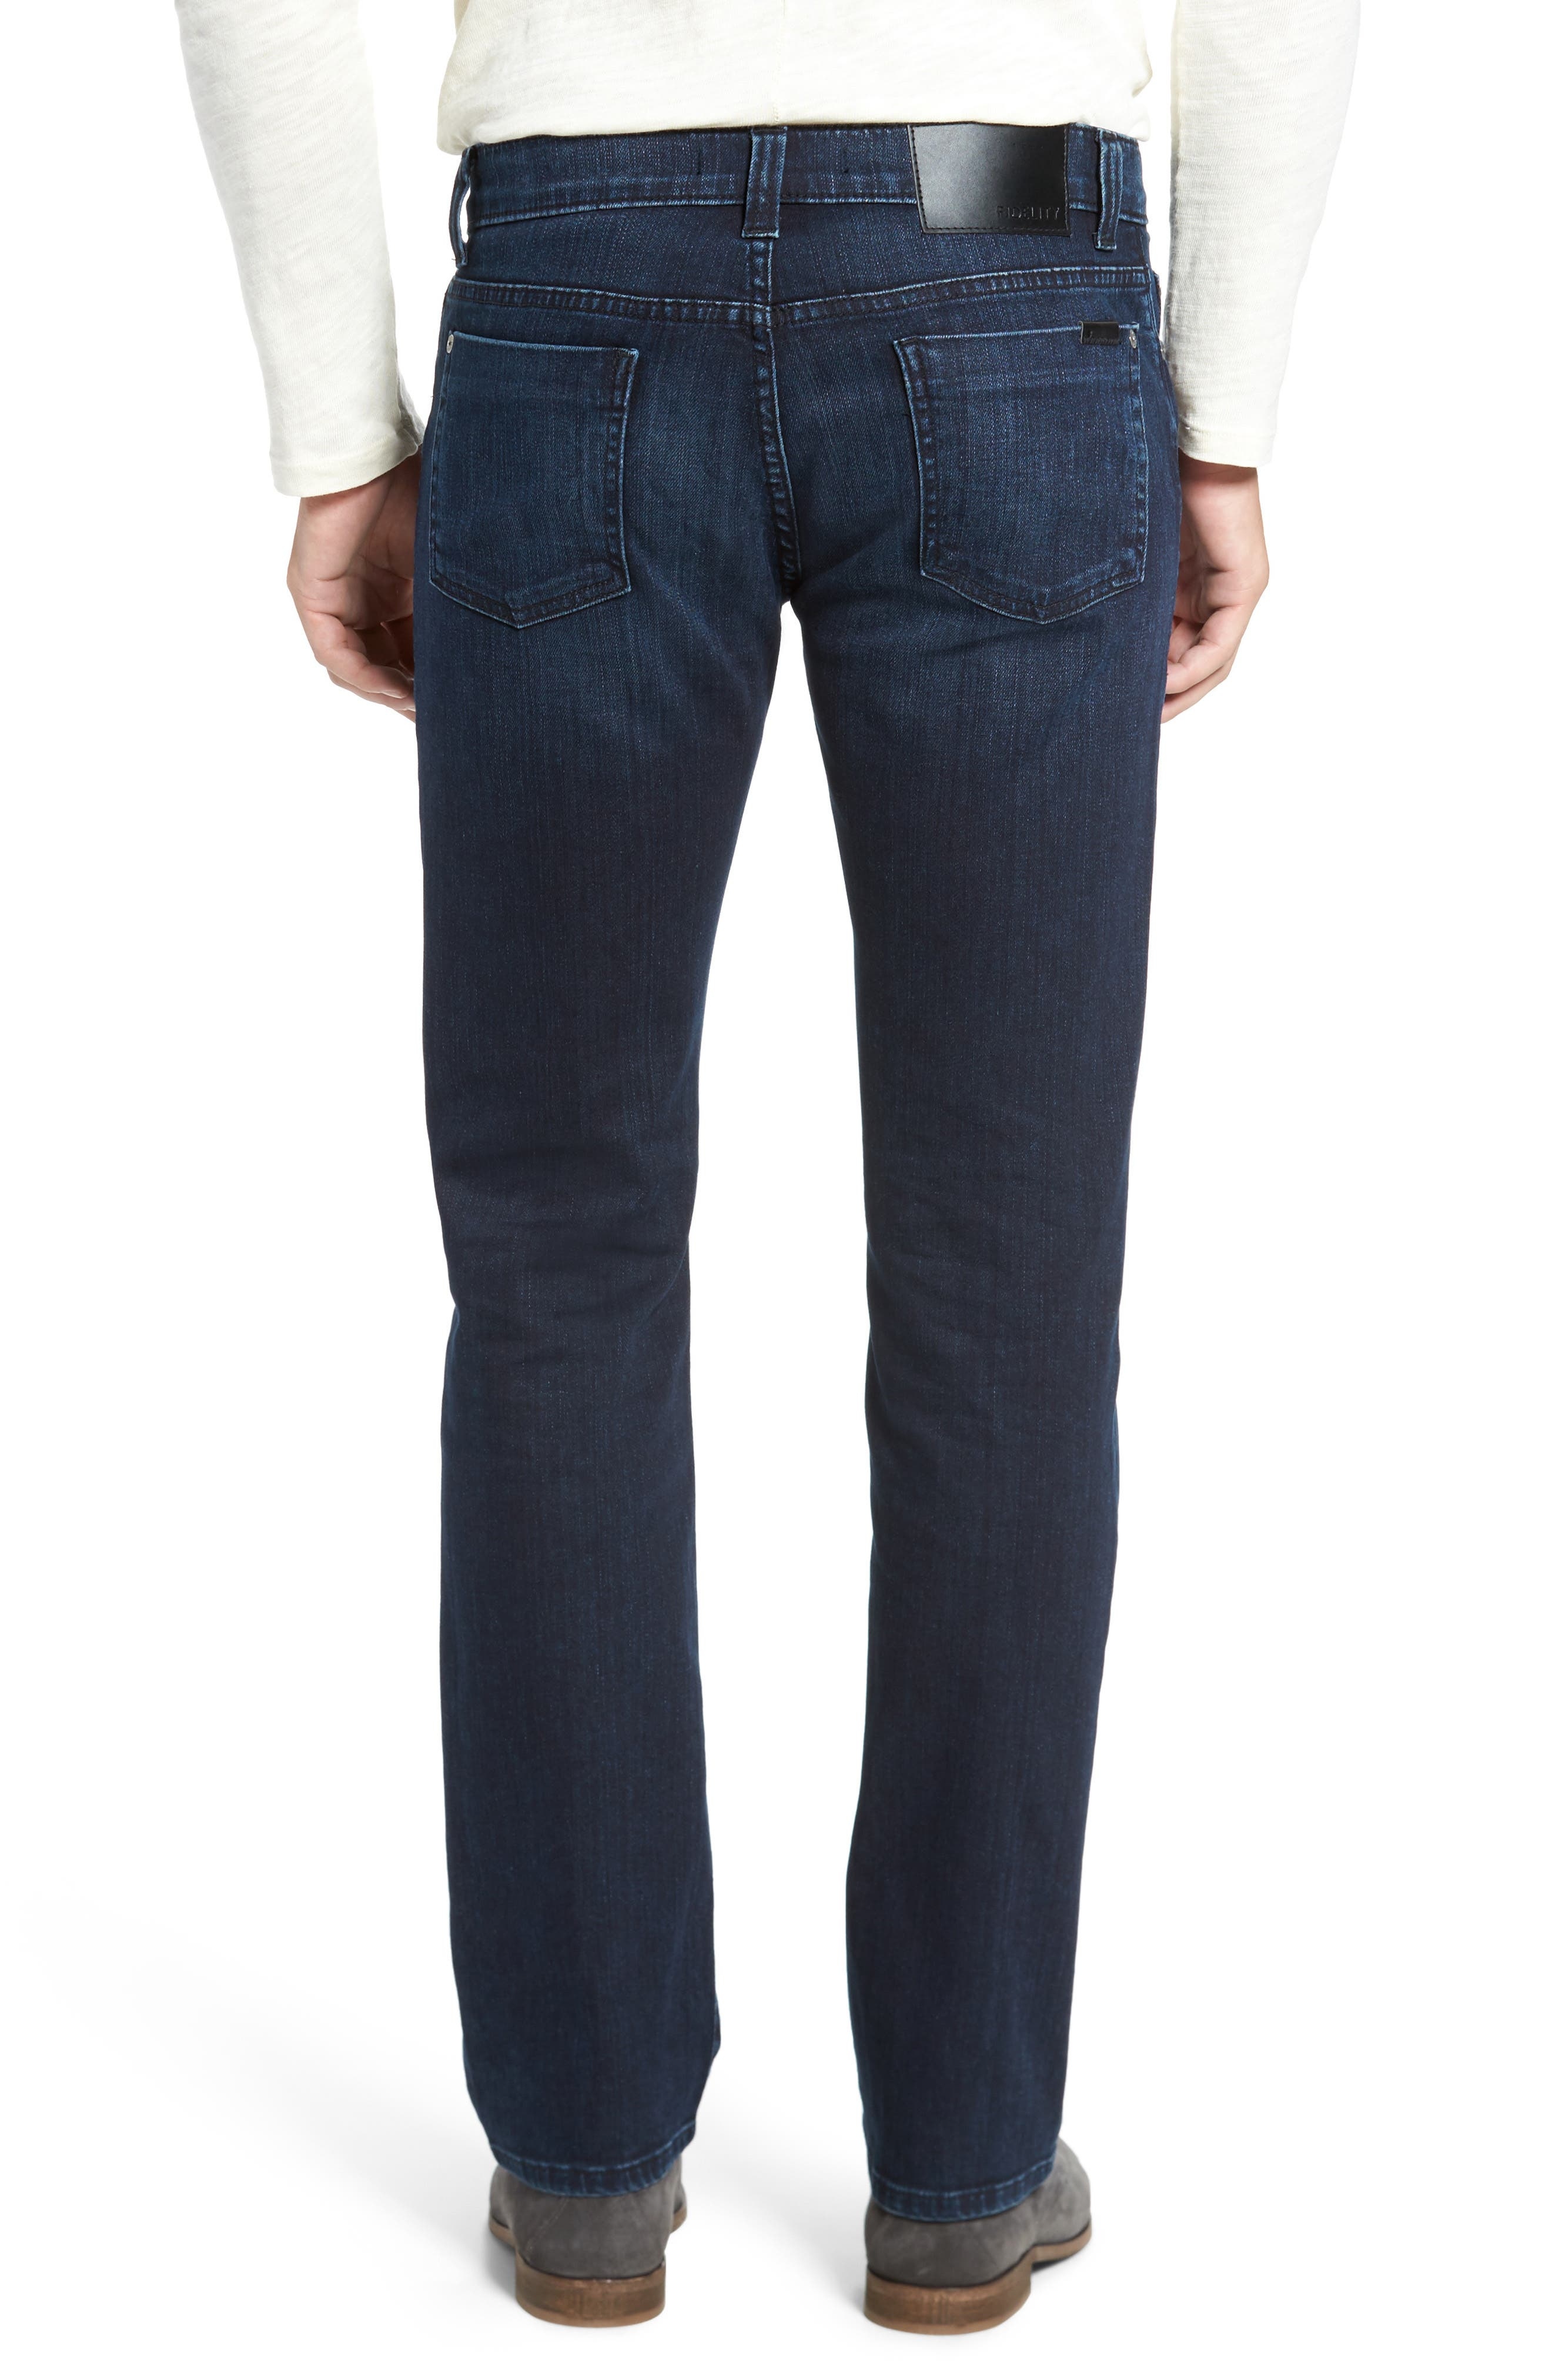 5011 Relaxed Fit Jeans,                             Alternate thumbnail 2, color,                             400